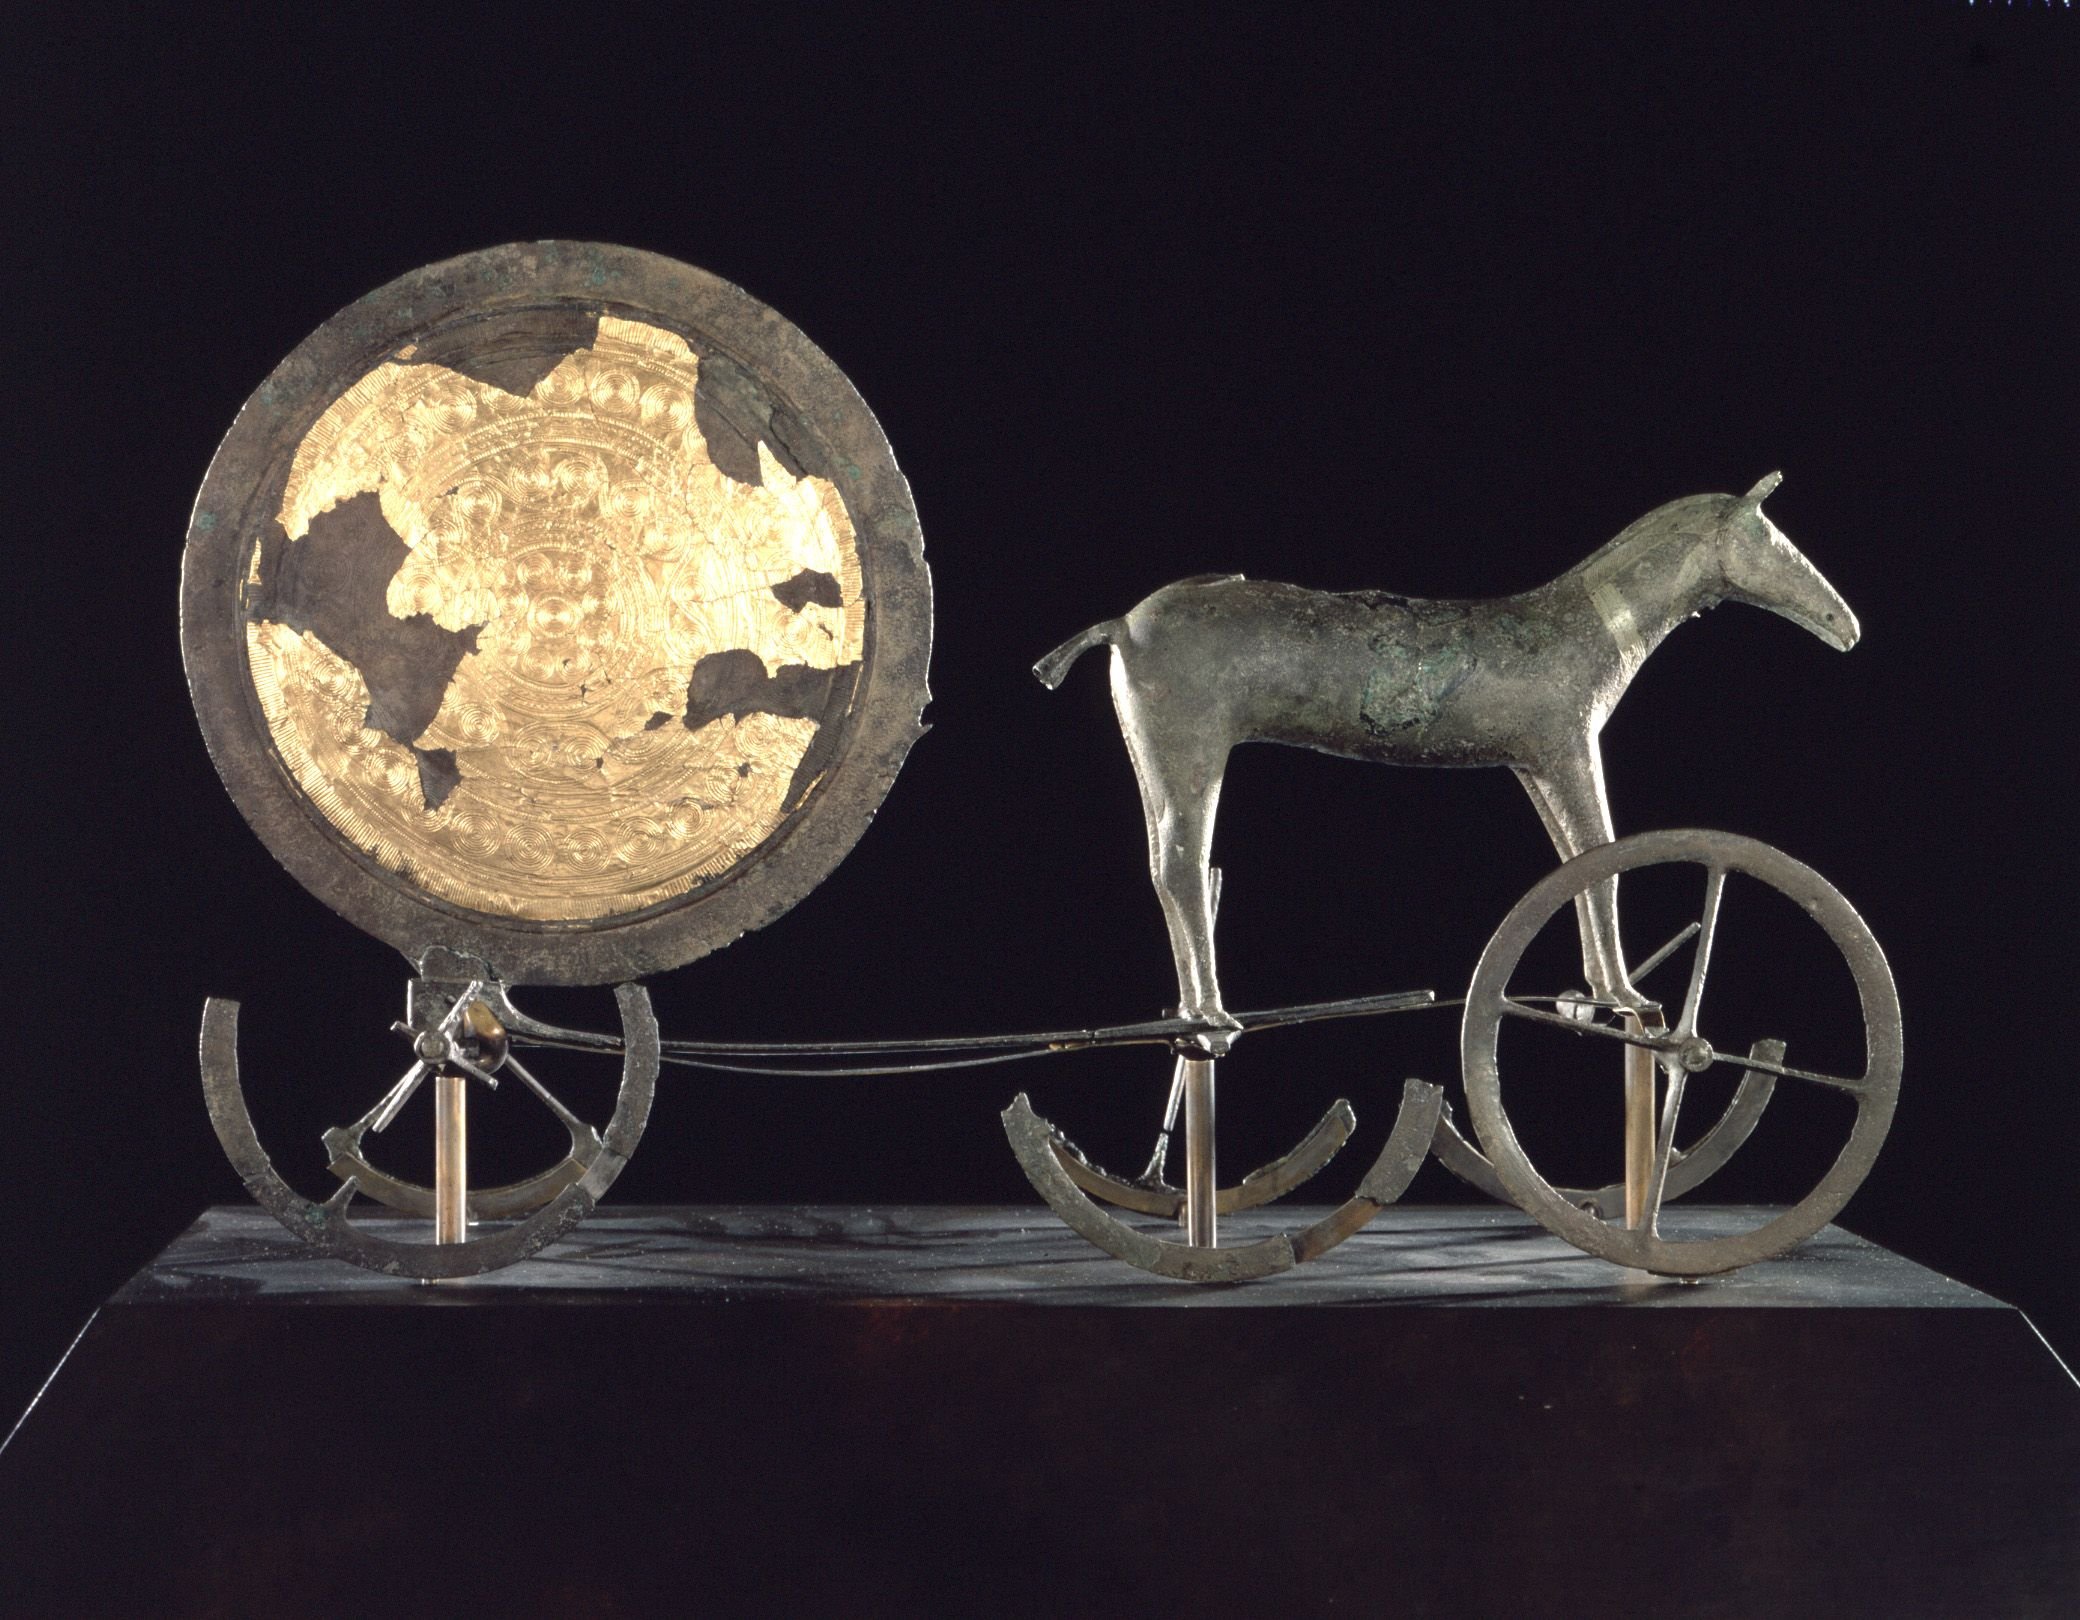 The Trundholm Sun Chariot, an important late Nordic Bronze Age artifact. Displayed in the National Museum of Denmark, Copenhagen.